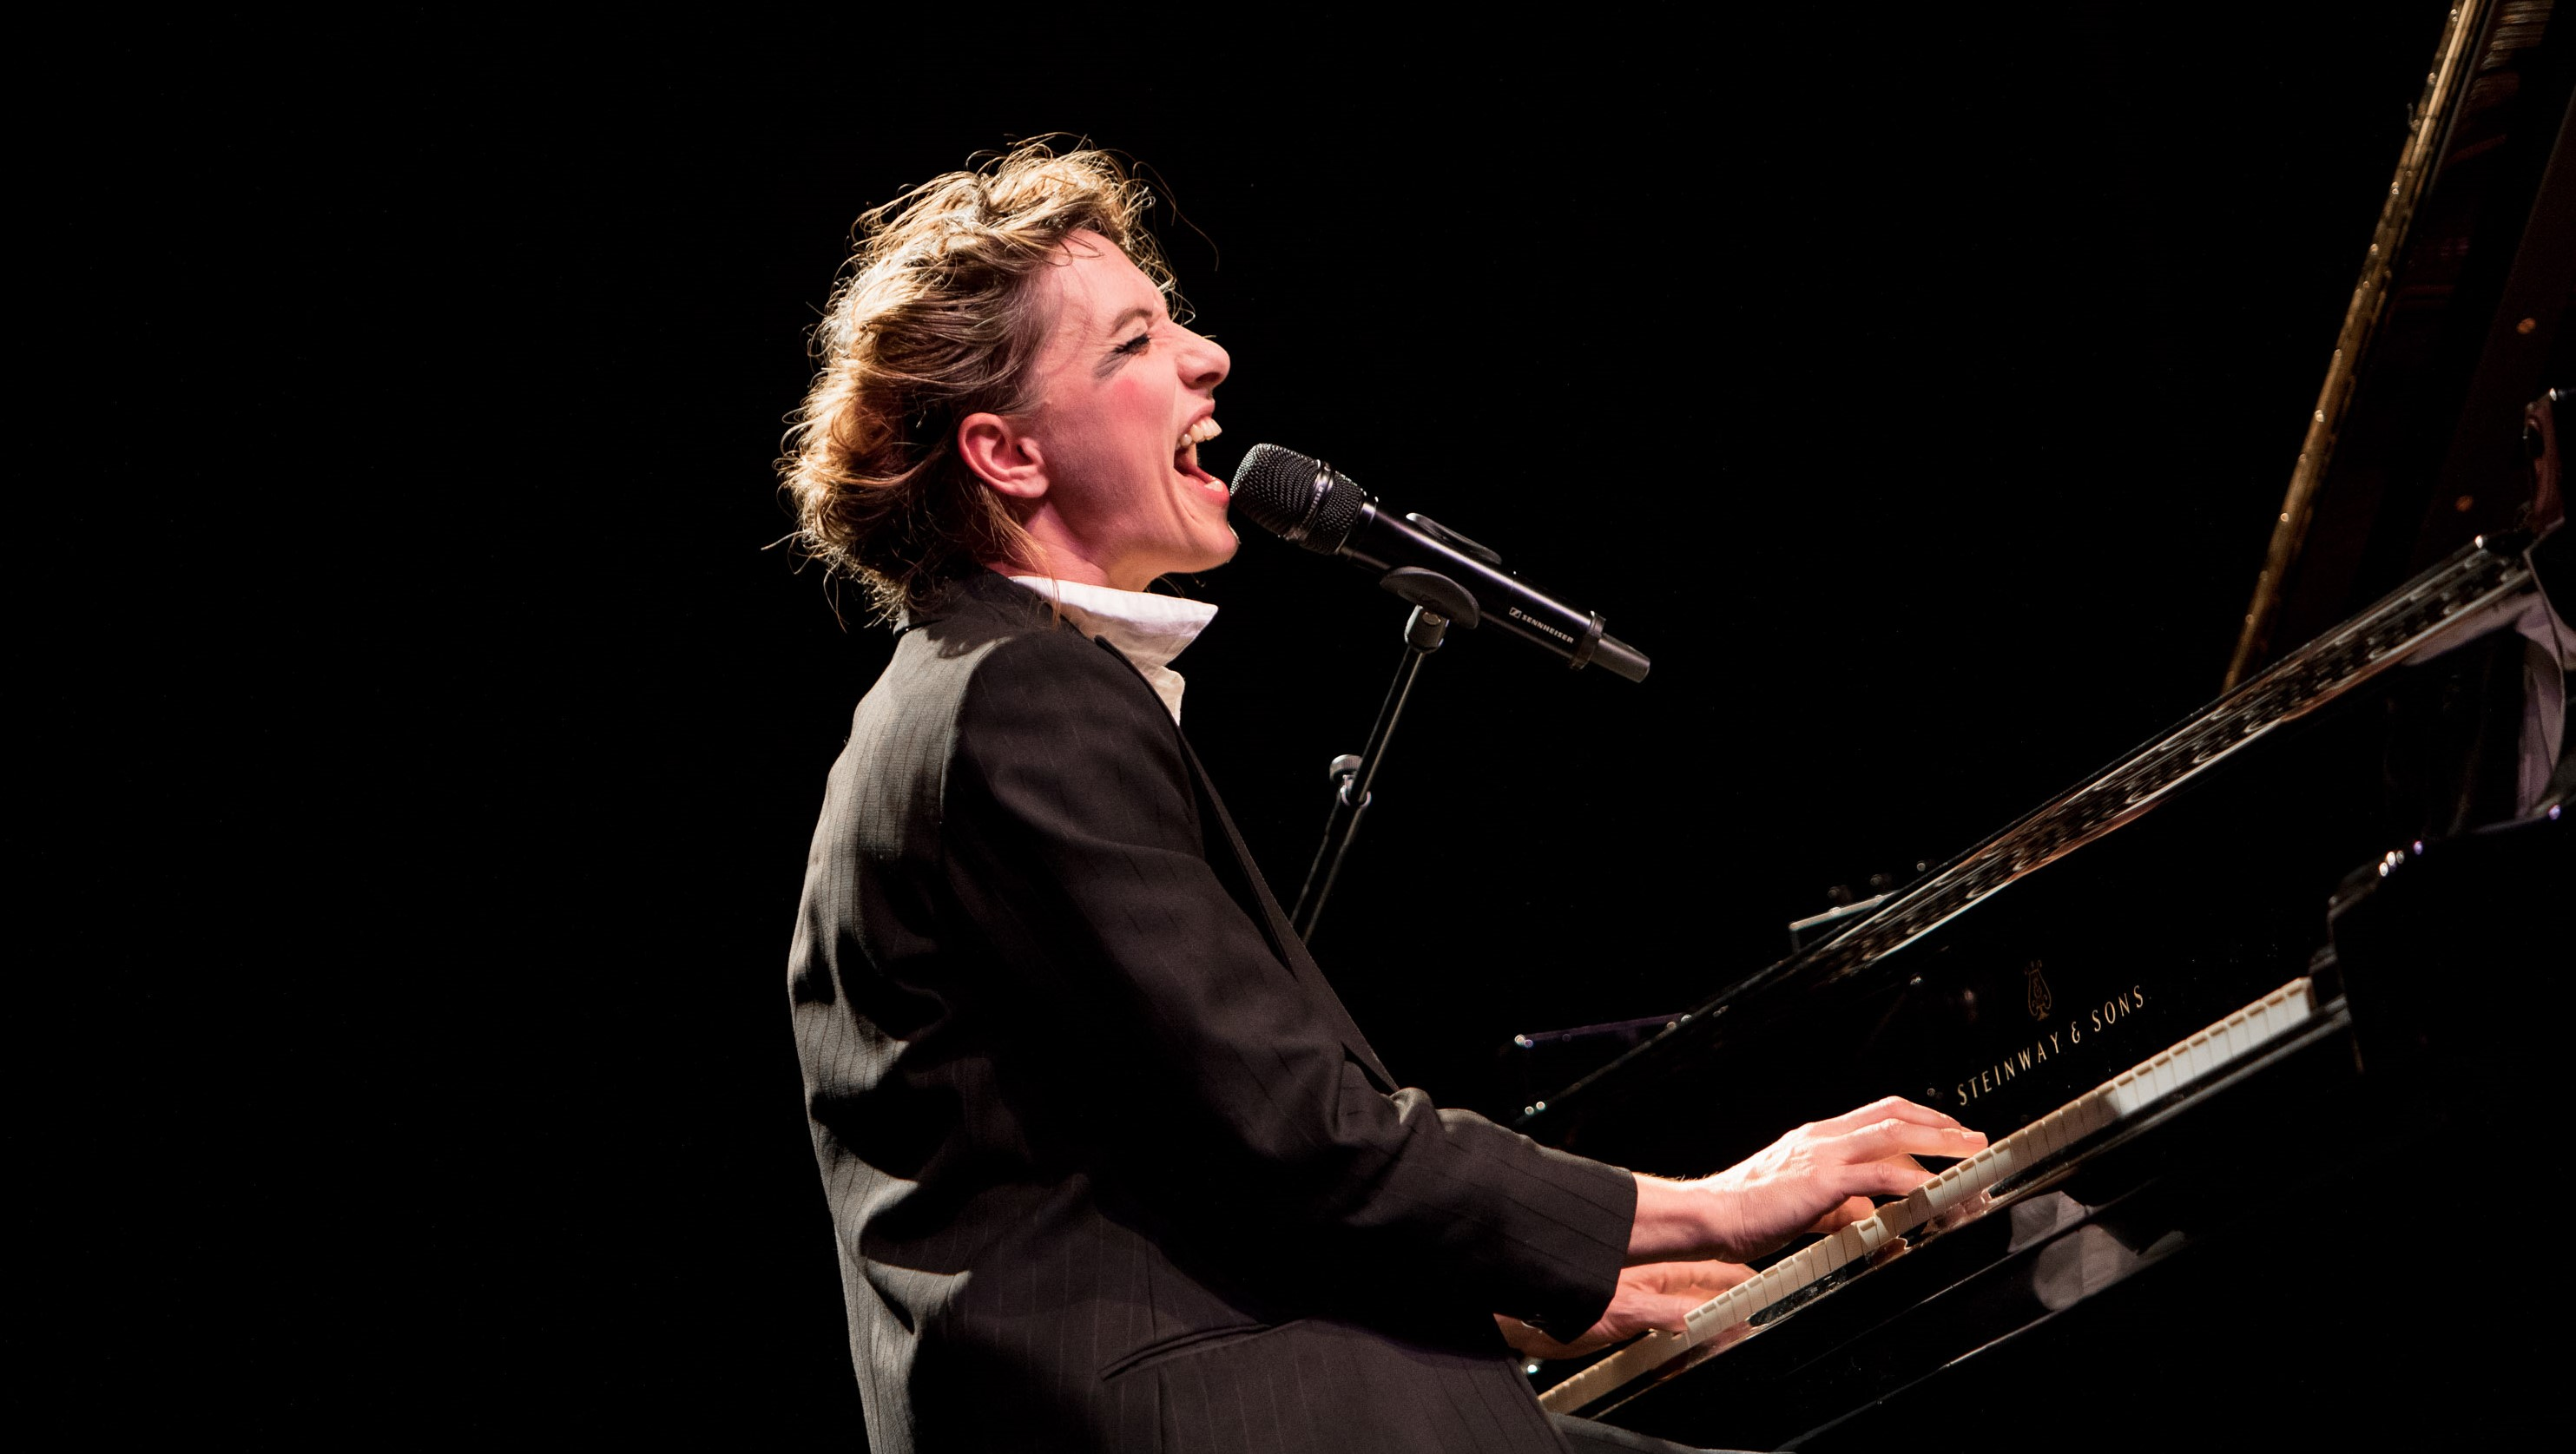 Amanda Palmer Images interview: how amanda palmer is carriedher community